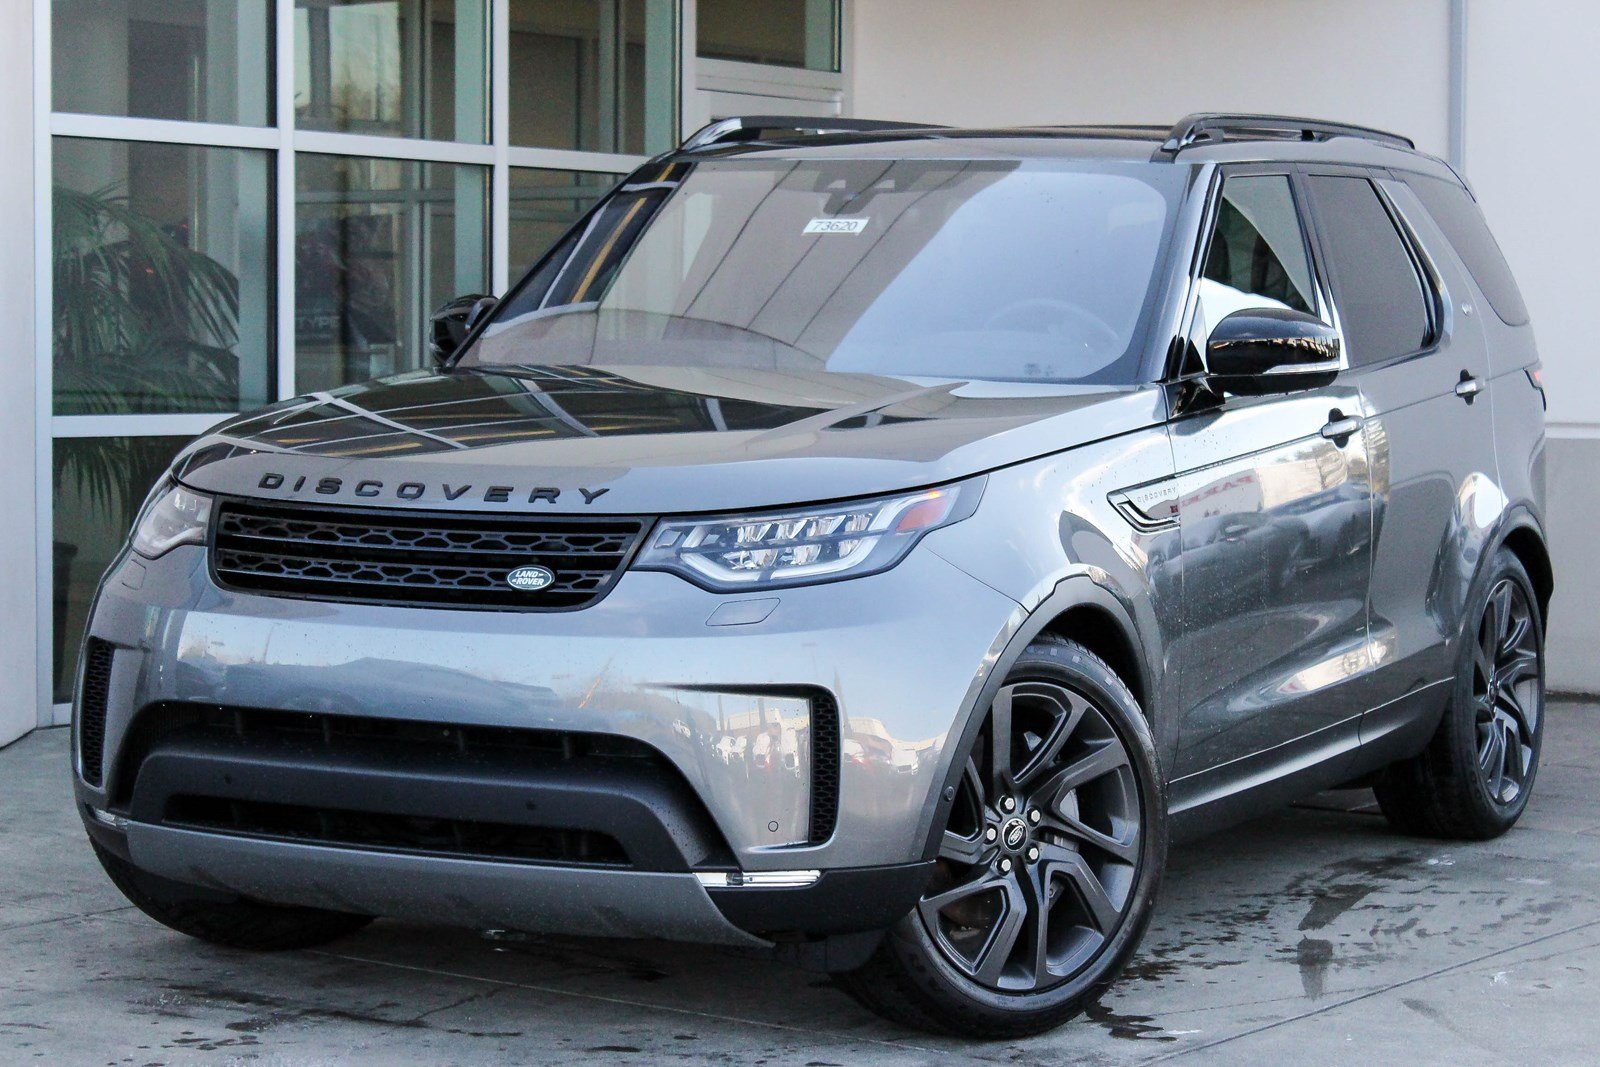 Land Rover Seattle >> New 2018 Land Rover Discovery HSE Sport Utility in Lynnwood #73620 | Land Rover Seattle